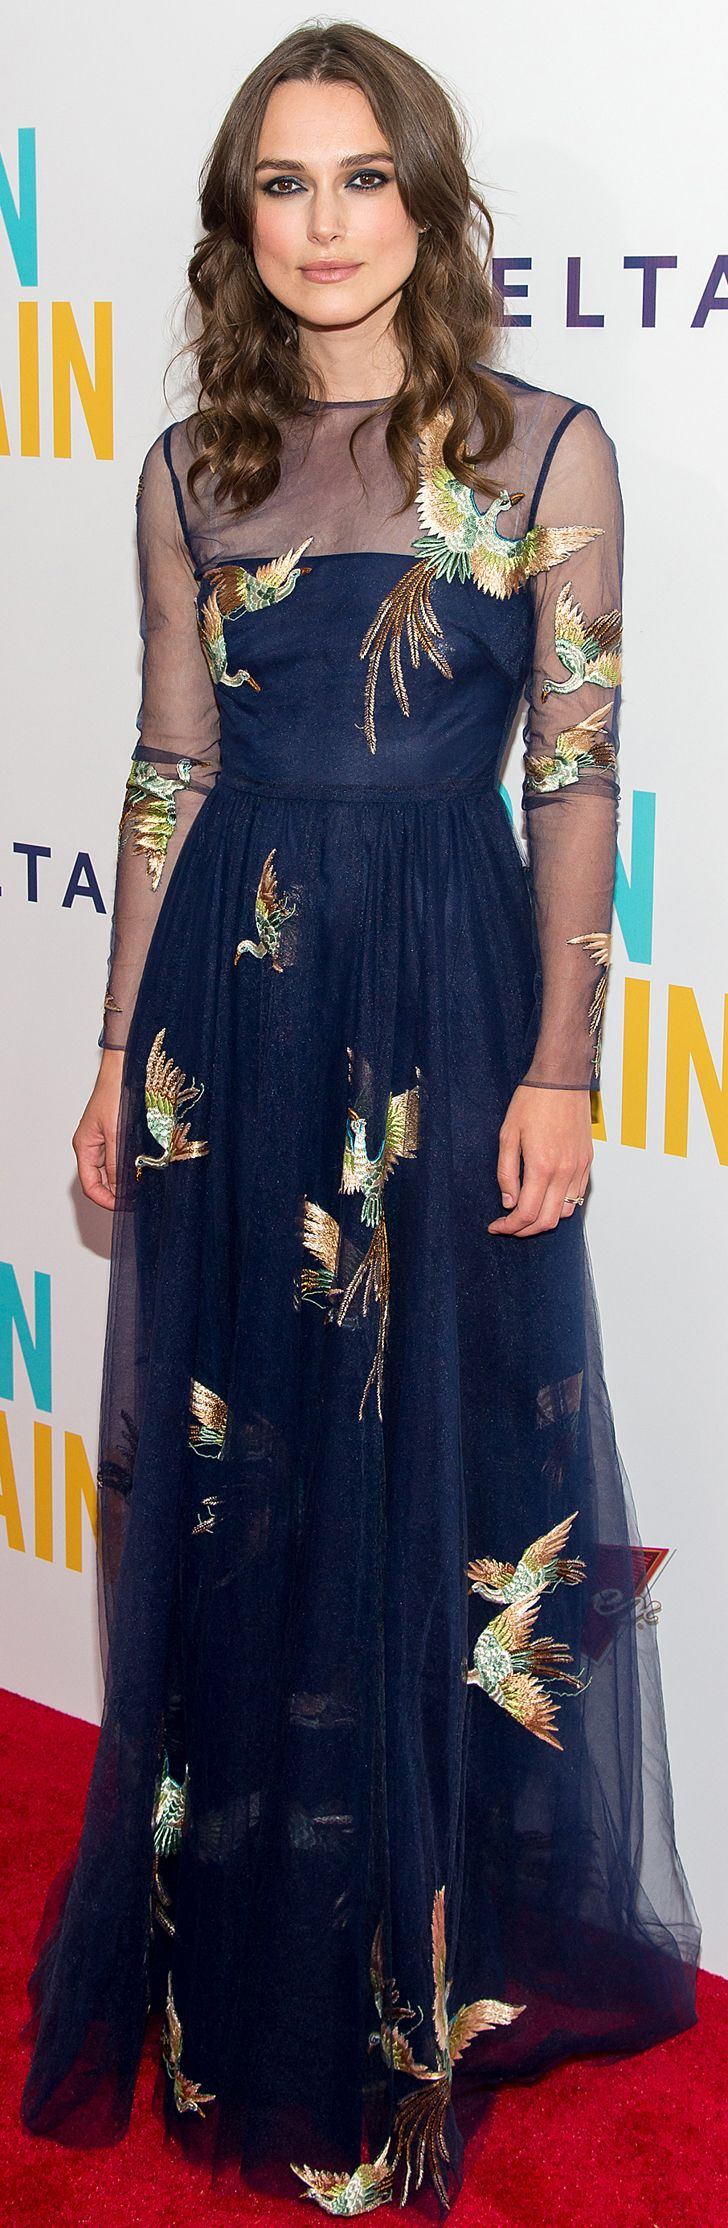 Keira Knightley at the Begin Again premiere in  Valentino and Tiffany - I'm not a Keira fan but the dress is beautiful.